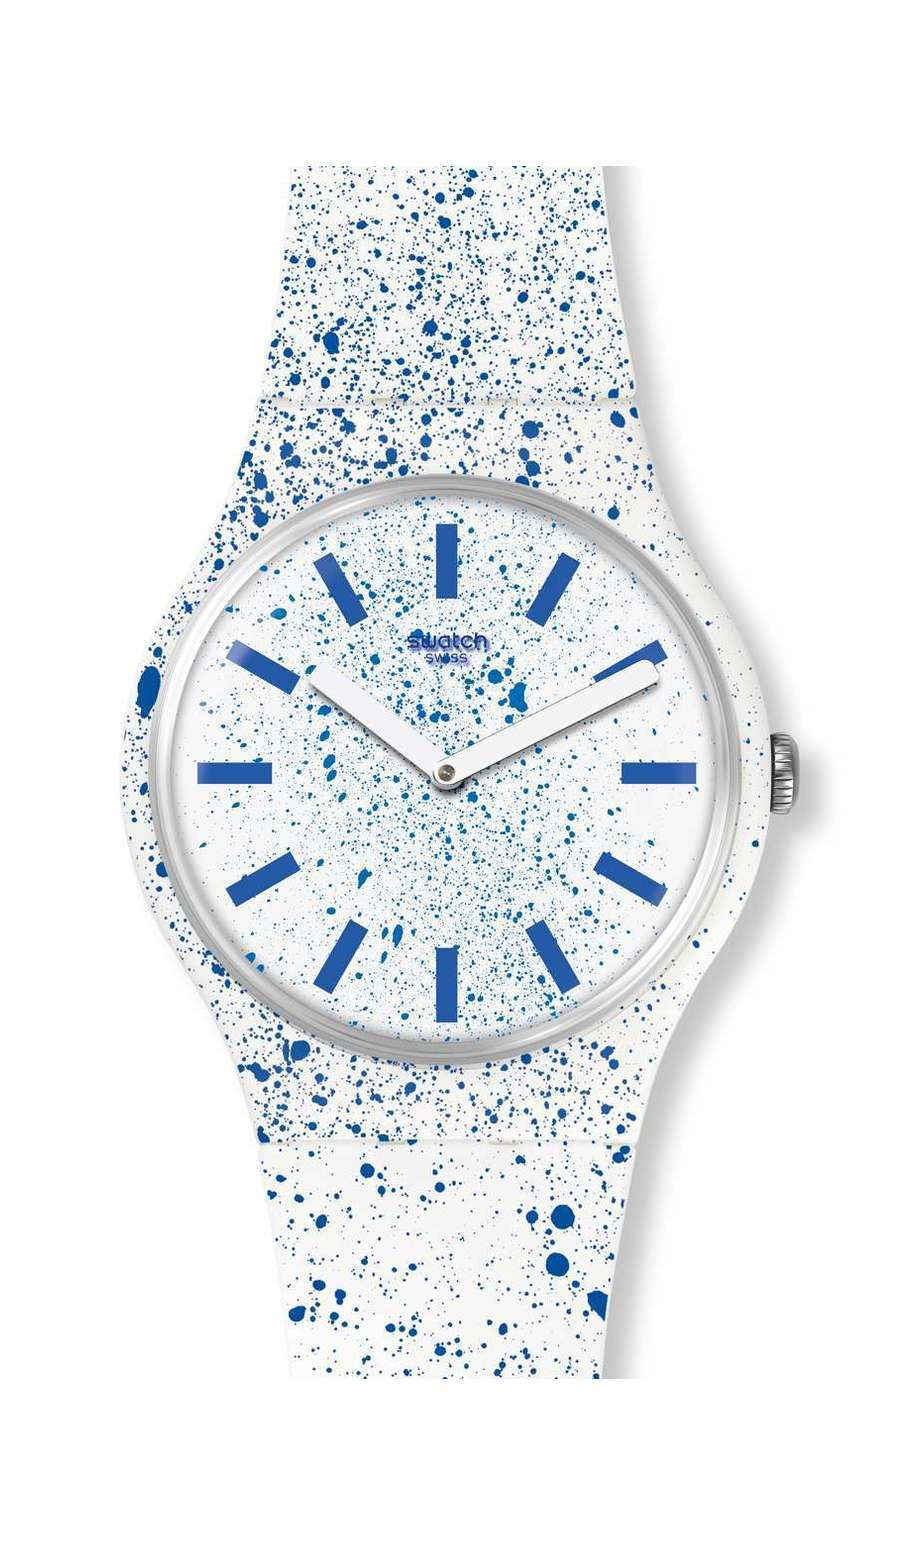 Swatch - FUZZY LOGIC - 1